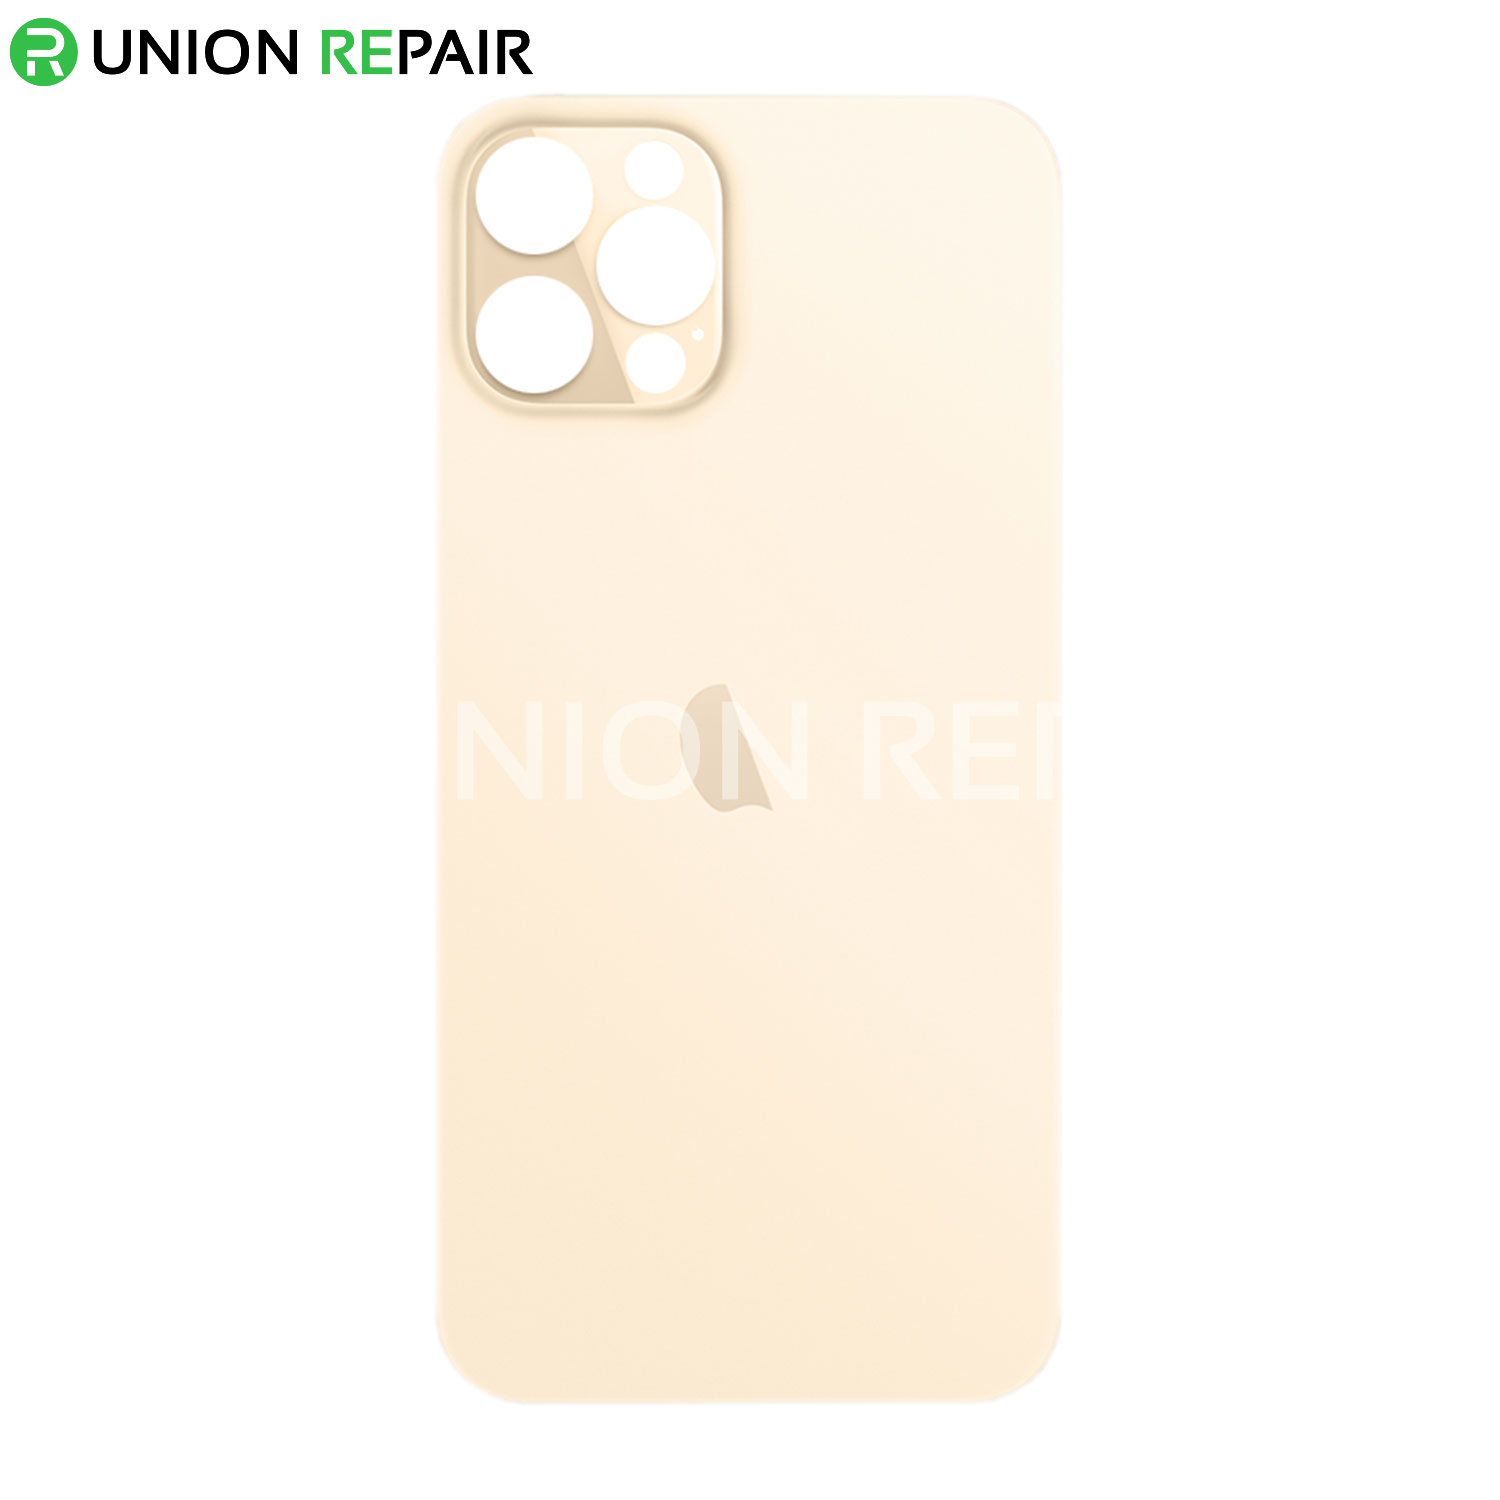 Replacement for iPhone 12 Pro Back Cover - Gold